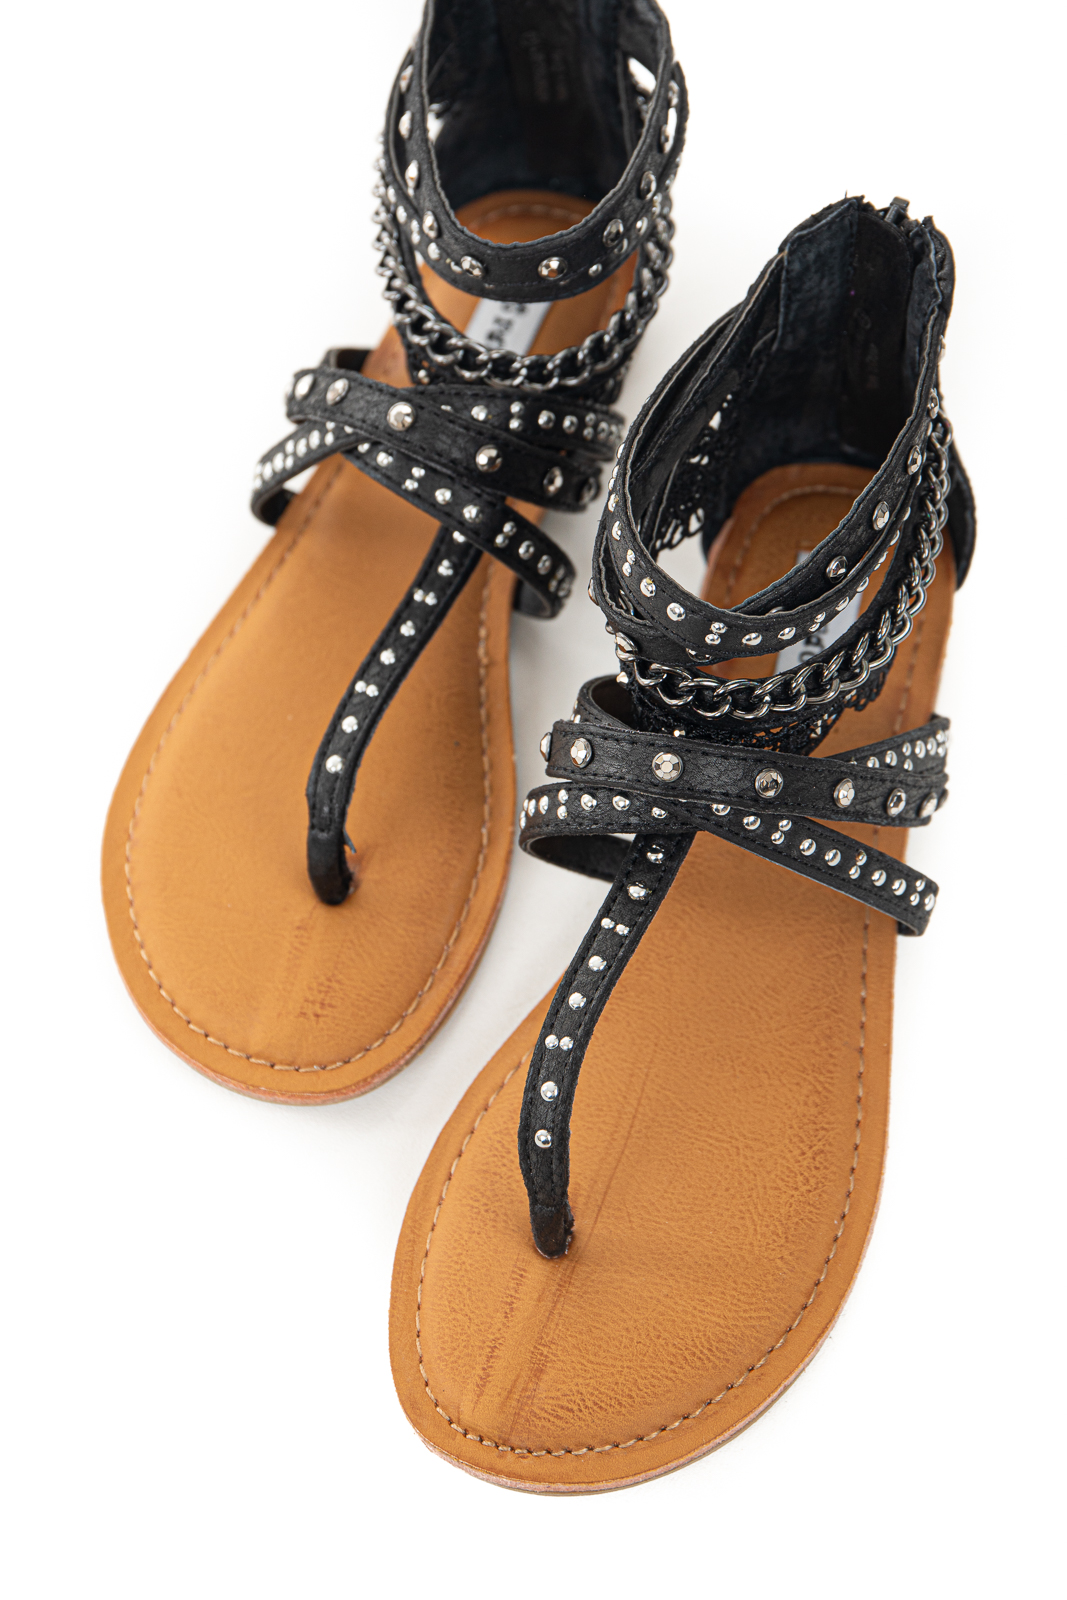 Black Strappy Sandals with Lace and Rhinestone Details